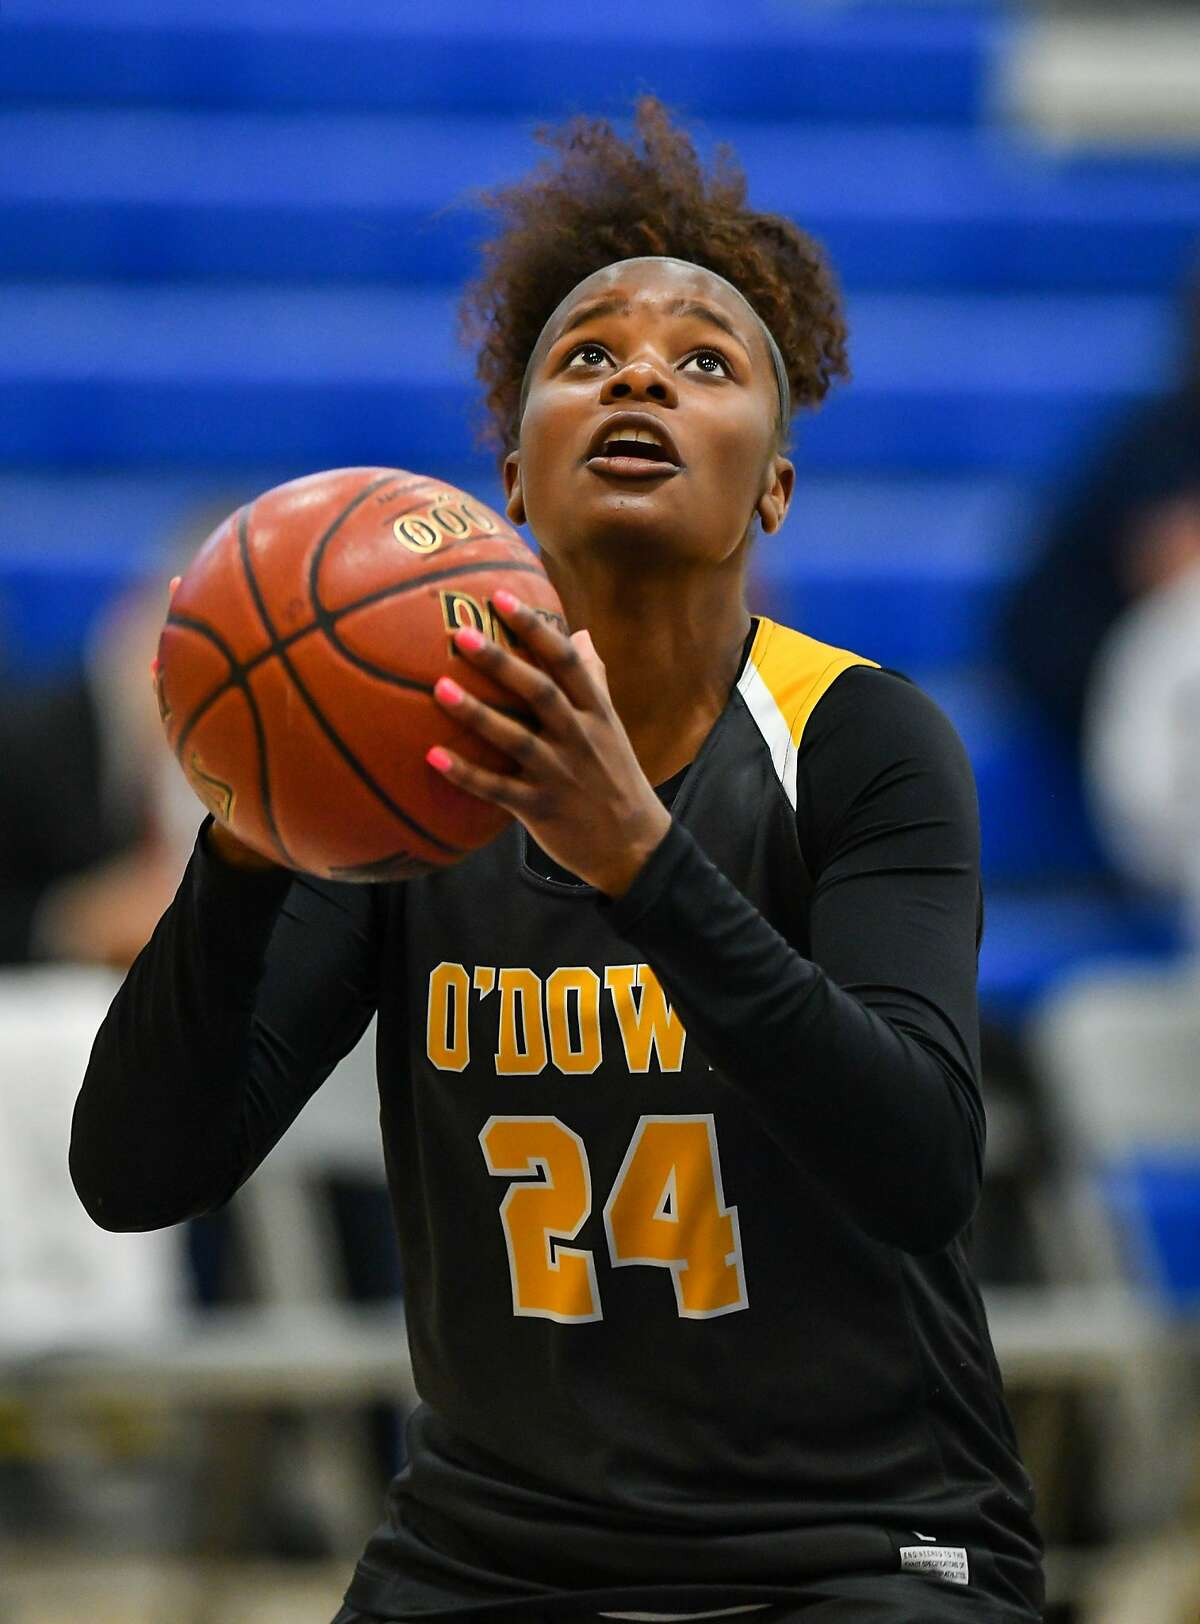 Kennedy Johnson of Bishop O'Dowd-Oakland is The Chronicle's East Bay Regional Girls Player of the Year.